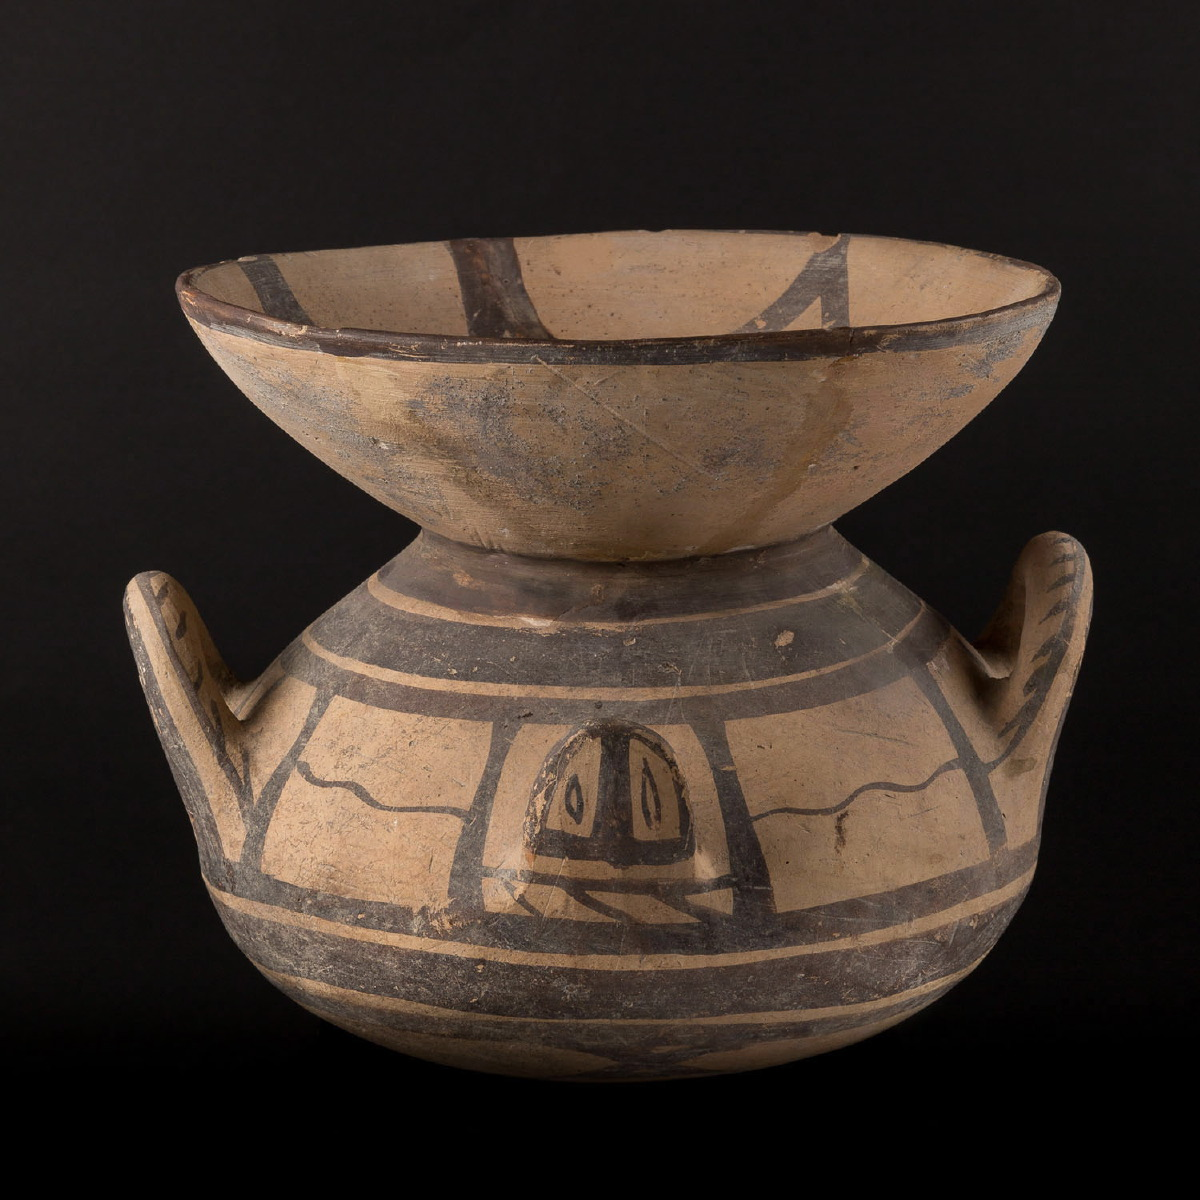 Photo ofOLLA STYLE VASE - IAPYGES FROM DAUNIO CULTURE